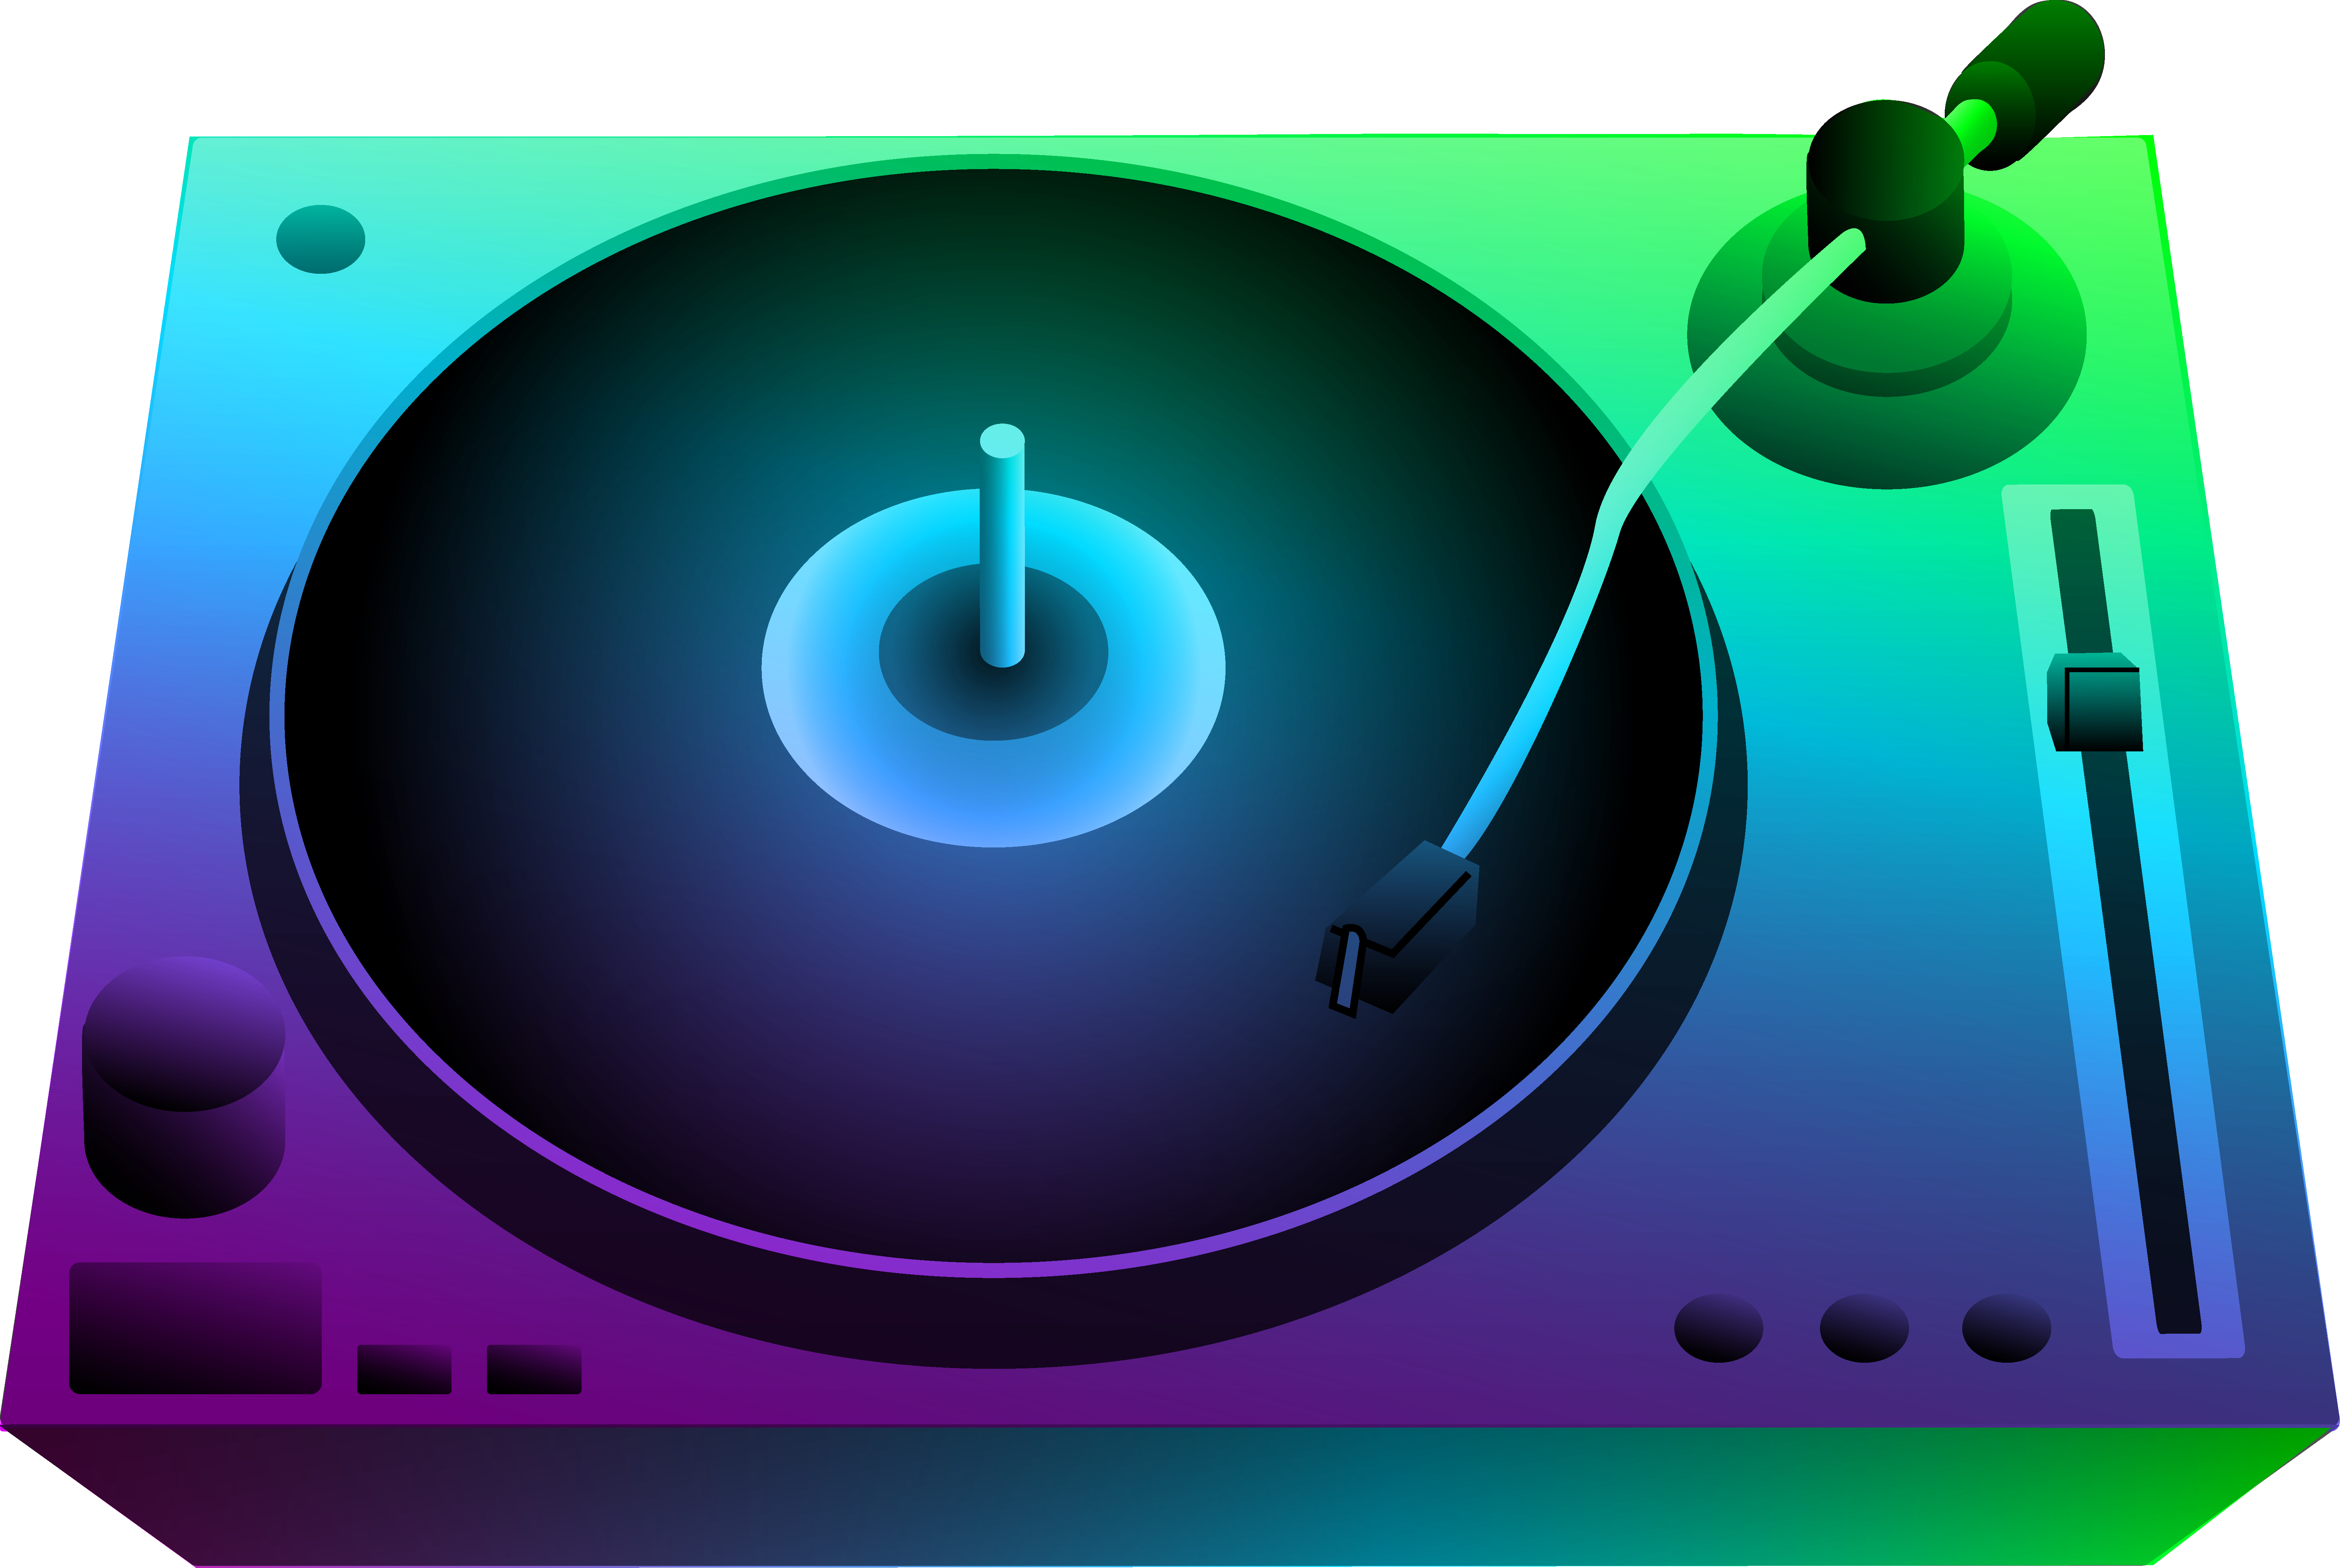 DJ Turntable Under Neon Lights.